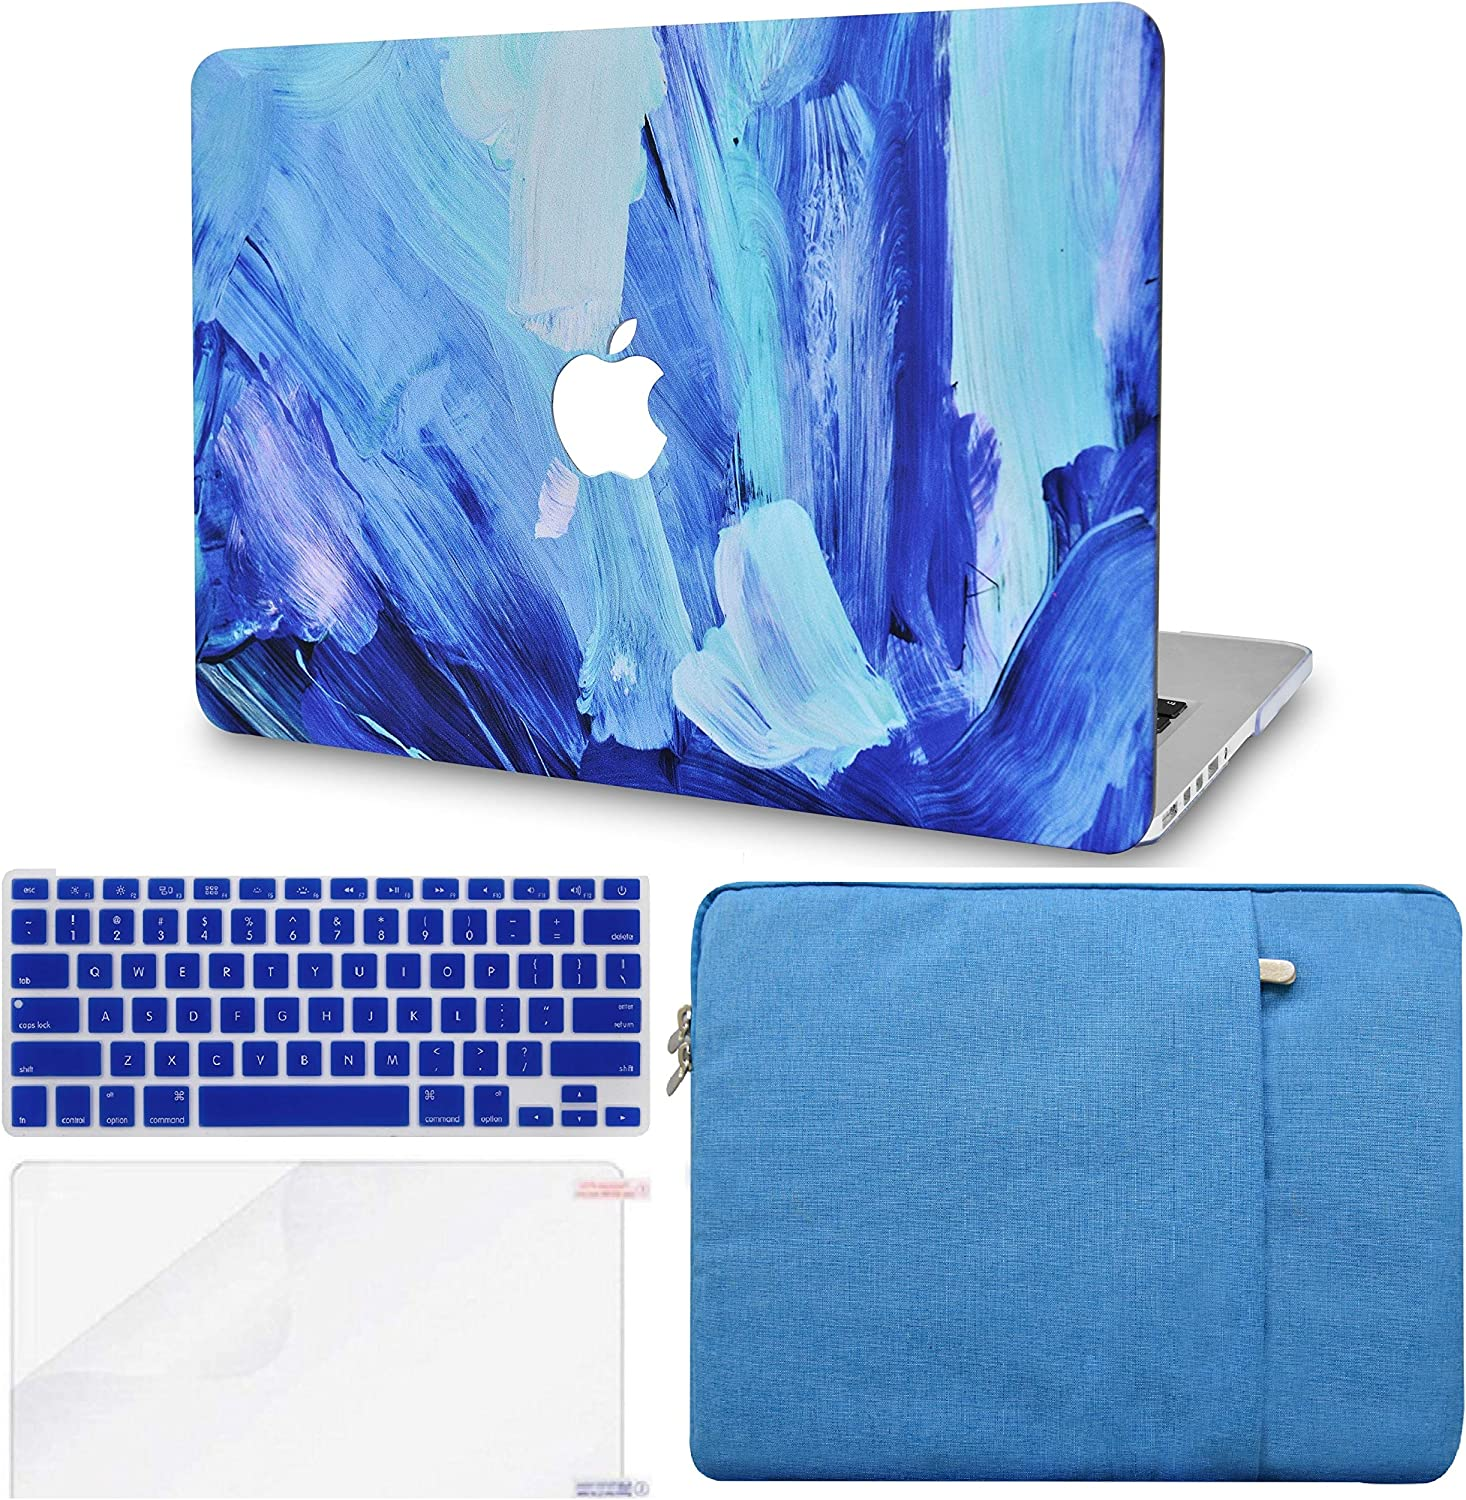 "LuvCase 4in1 Laptop Case for MacBook Pro 13""(2020) with Touch Bar A2251/A2289 Hard Shell Cover, Sleeve, Keyboard Cover & Screen Protector (Oil Paint 5)"